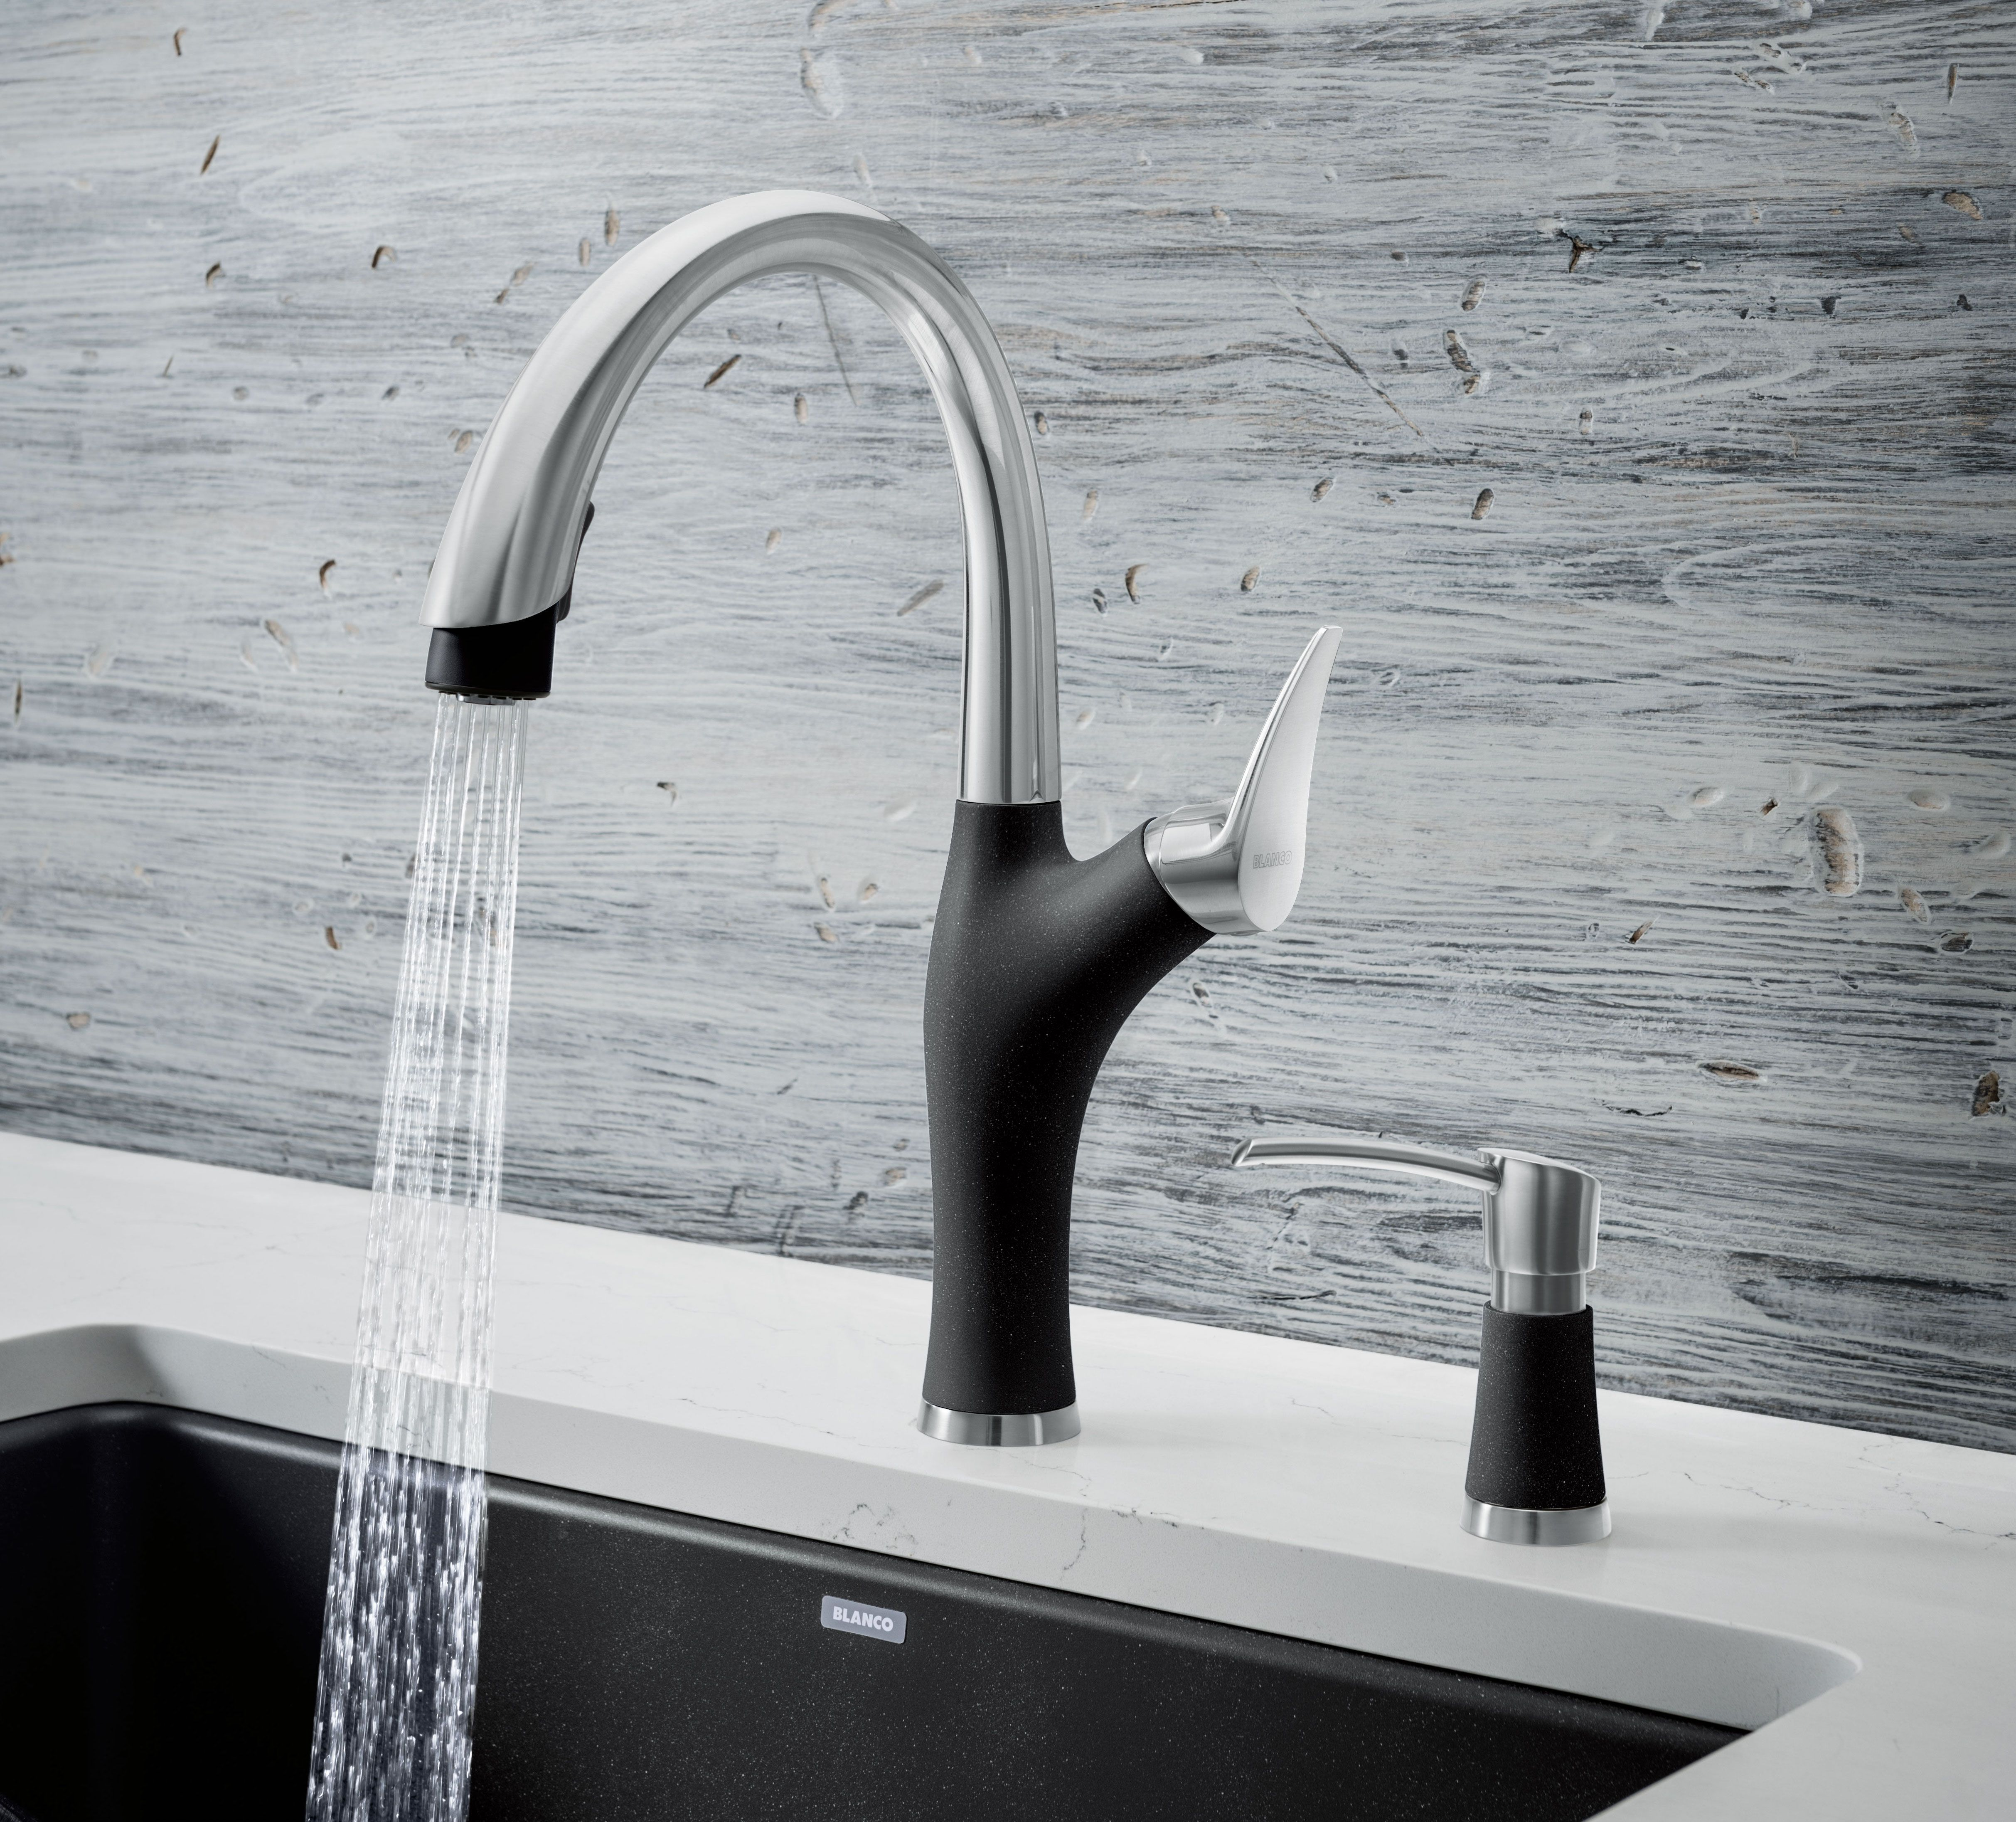 blanco s artona faucet collection offers an organic shape with soft rounded curves and edges blancokitchenfa kitchen faucet faucet kitchen faucets pull down